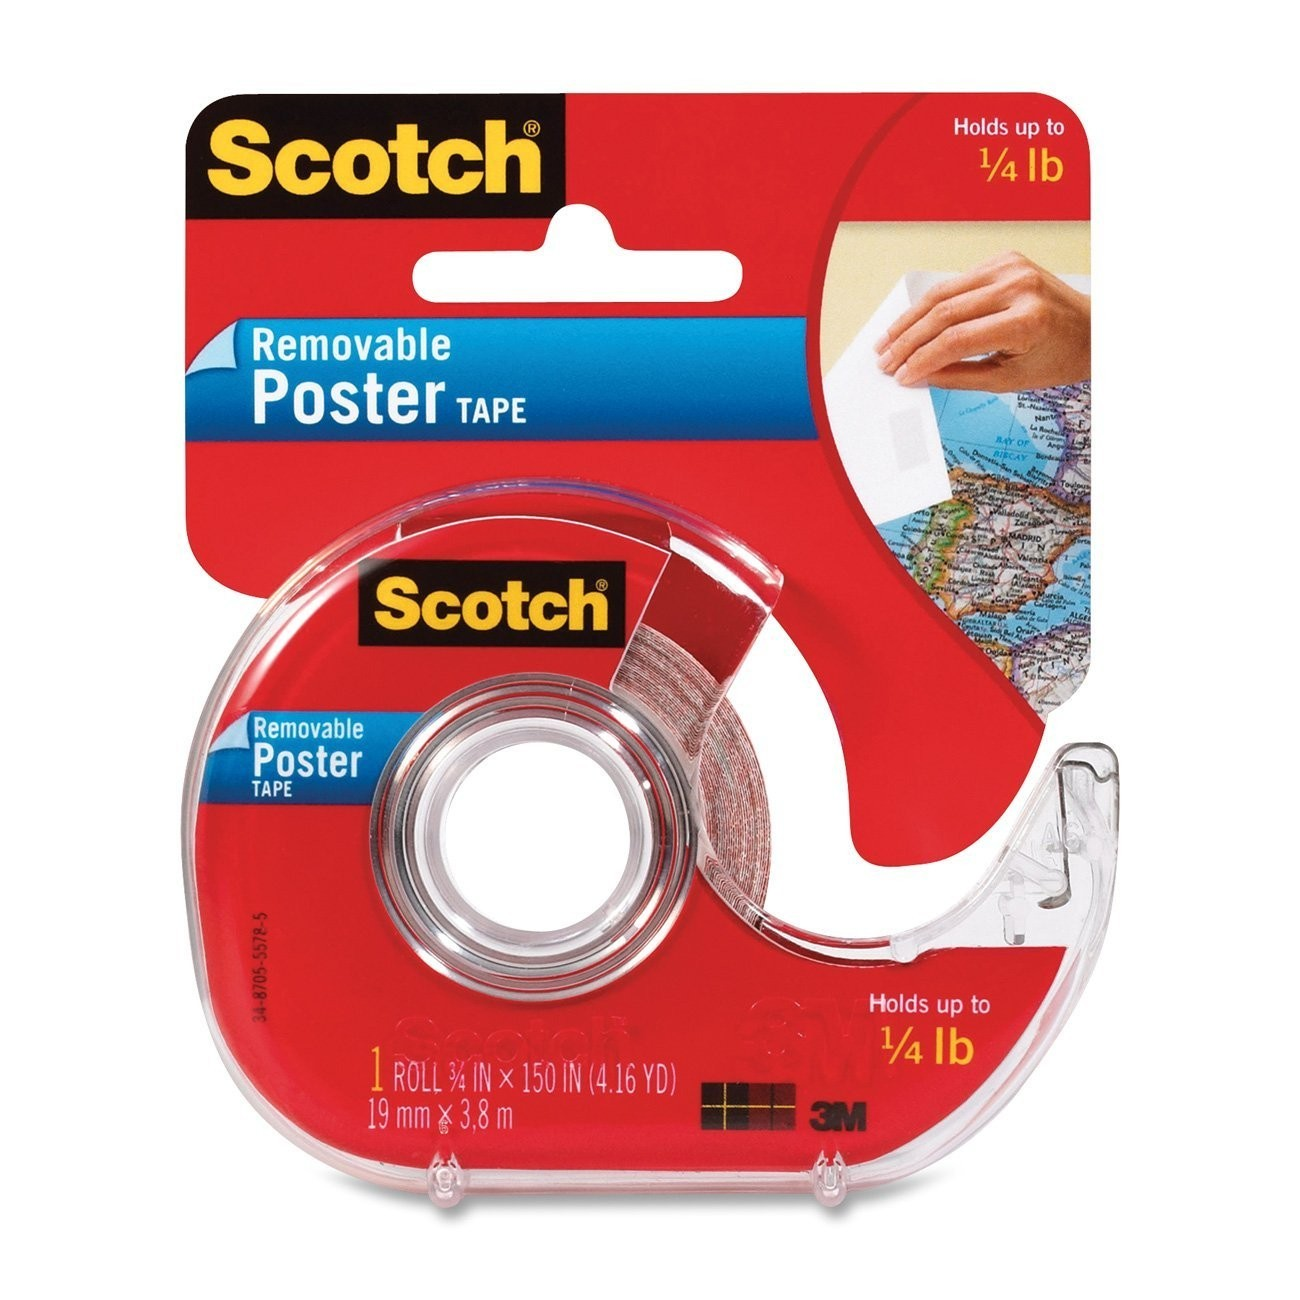 Scotch 109 Removable Poster Tape 19mm x 3.81m image